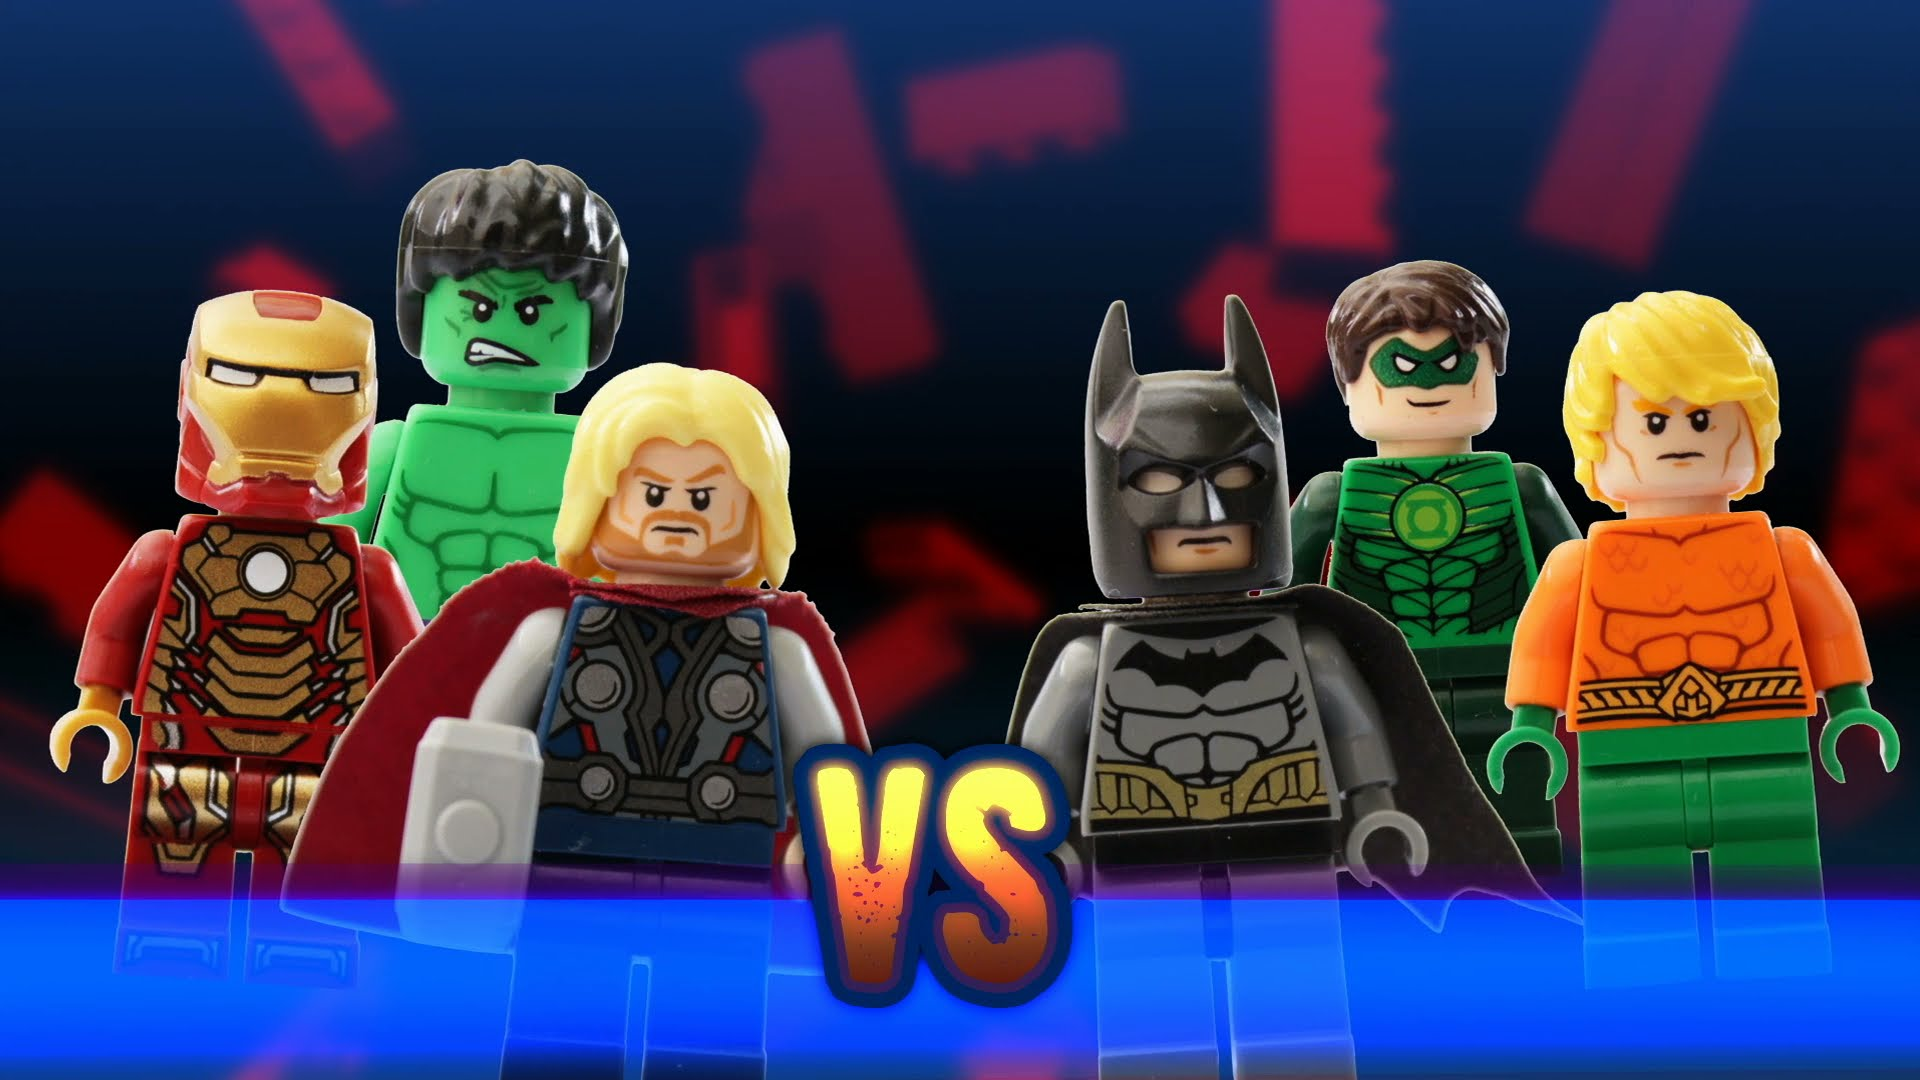 1920x1080 LEGO MARVEL vs DC - YouTube